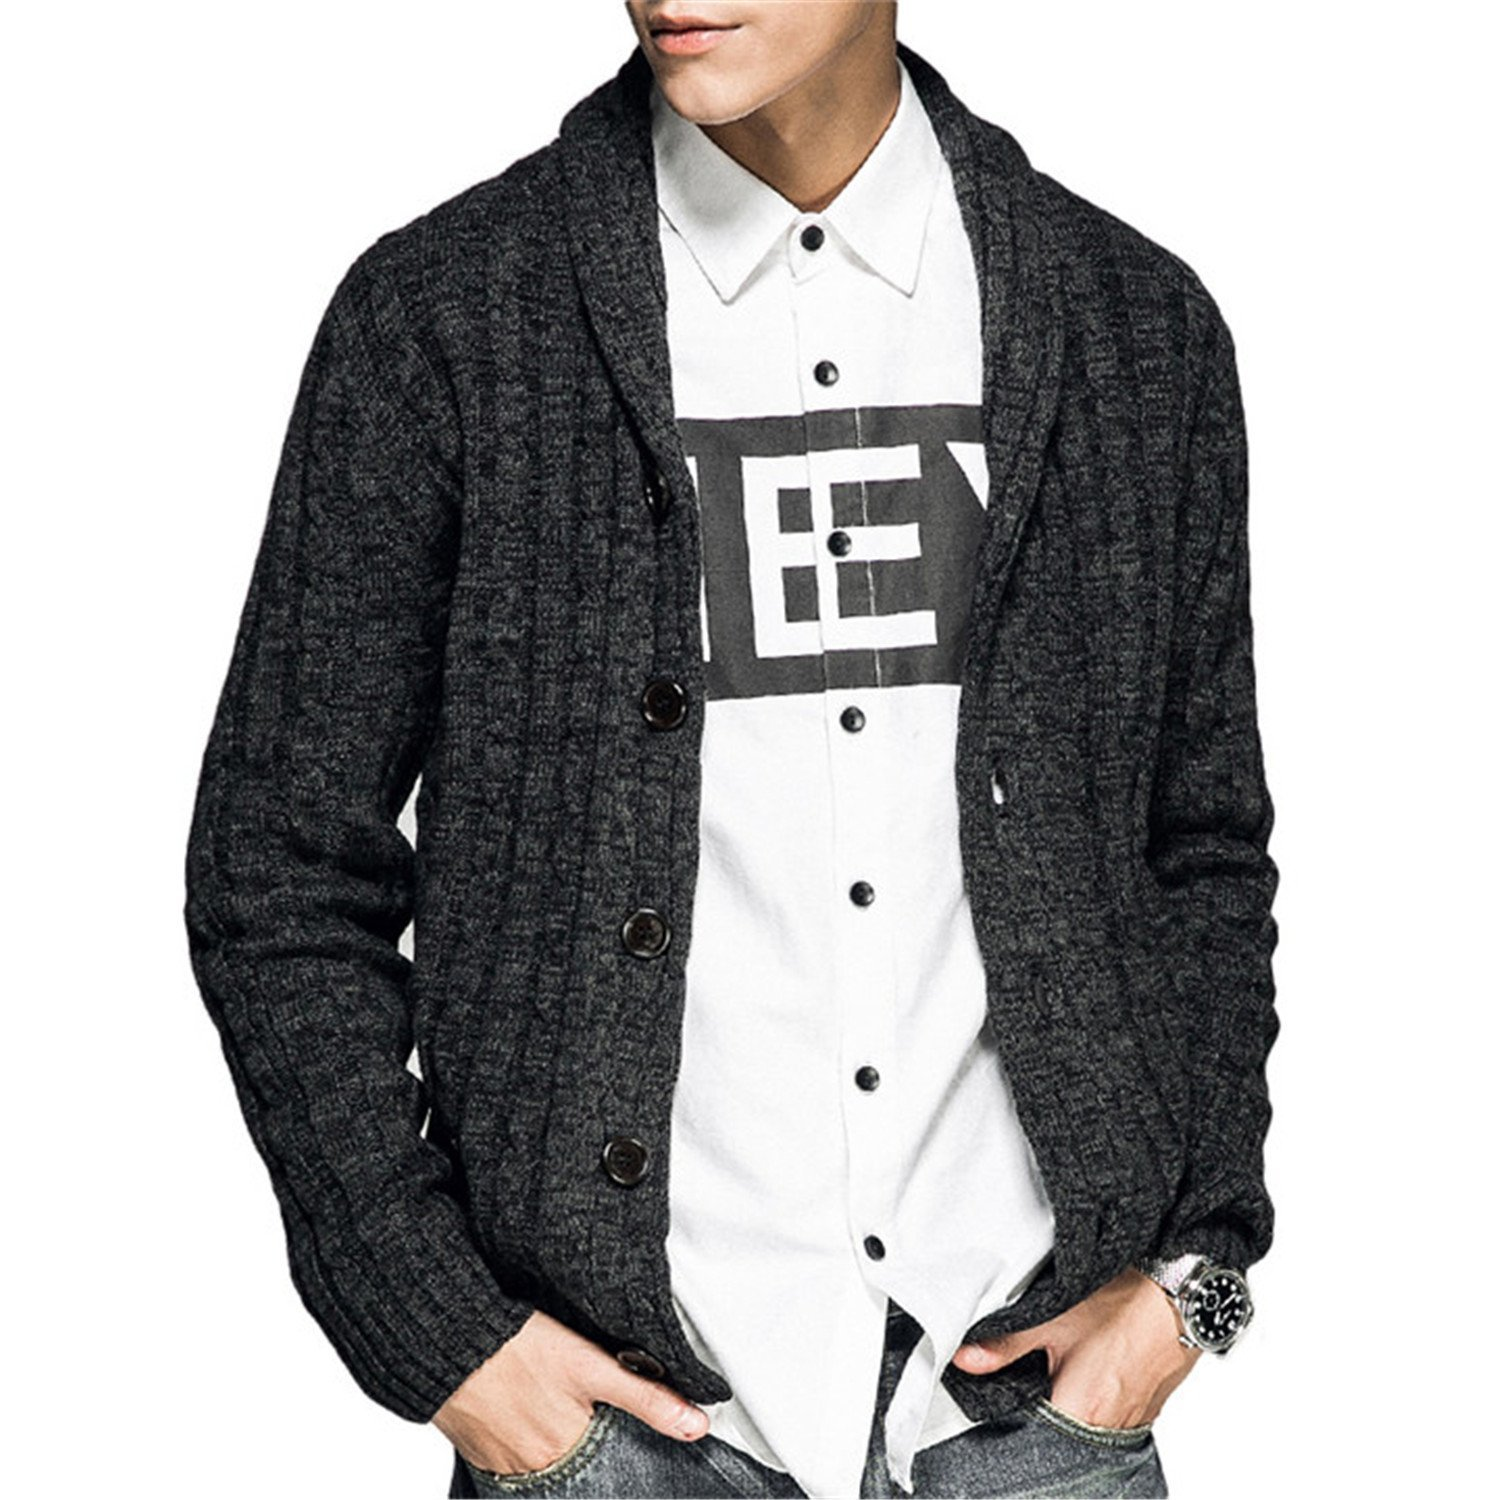 56daba5cb4 Get Quotations · Jeremy Martin Autumn Winter New Men s Thick Cardigan  Sweater Fashion Casual Cotton Slim Knitted Jacket